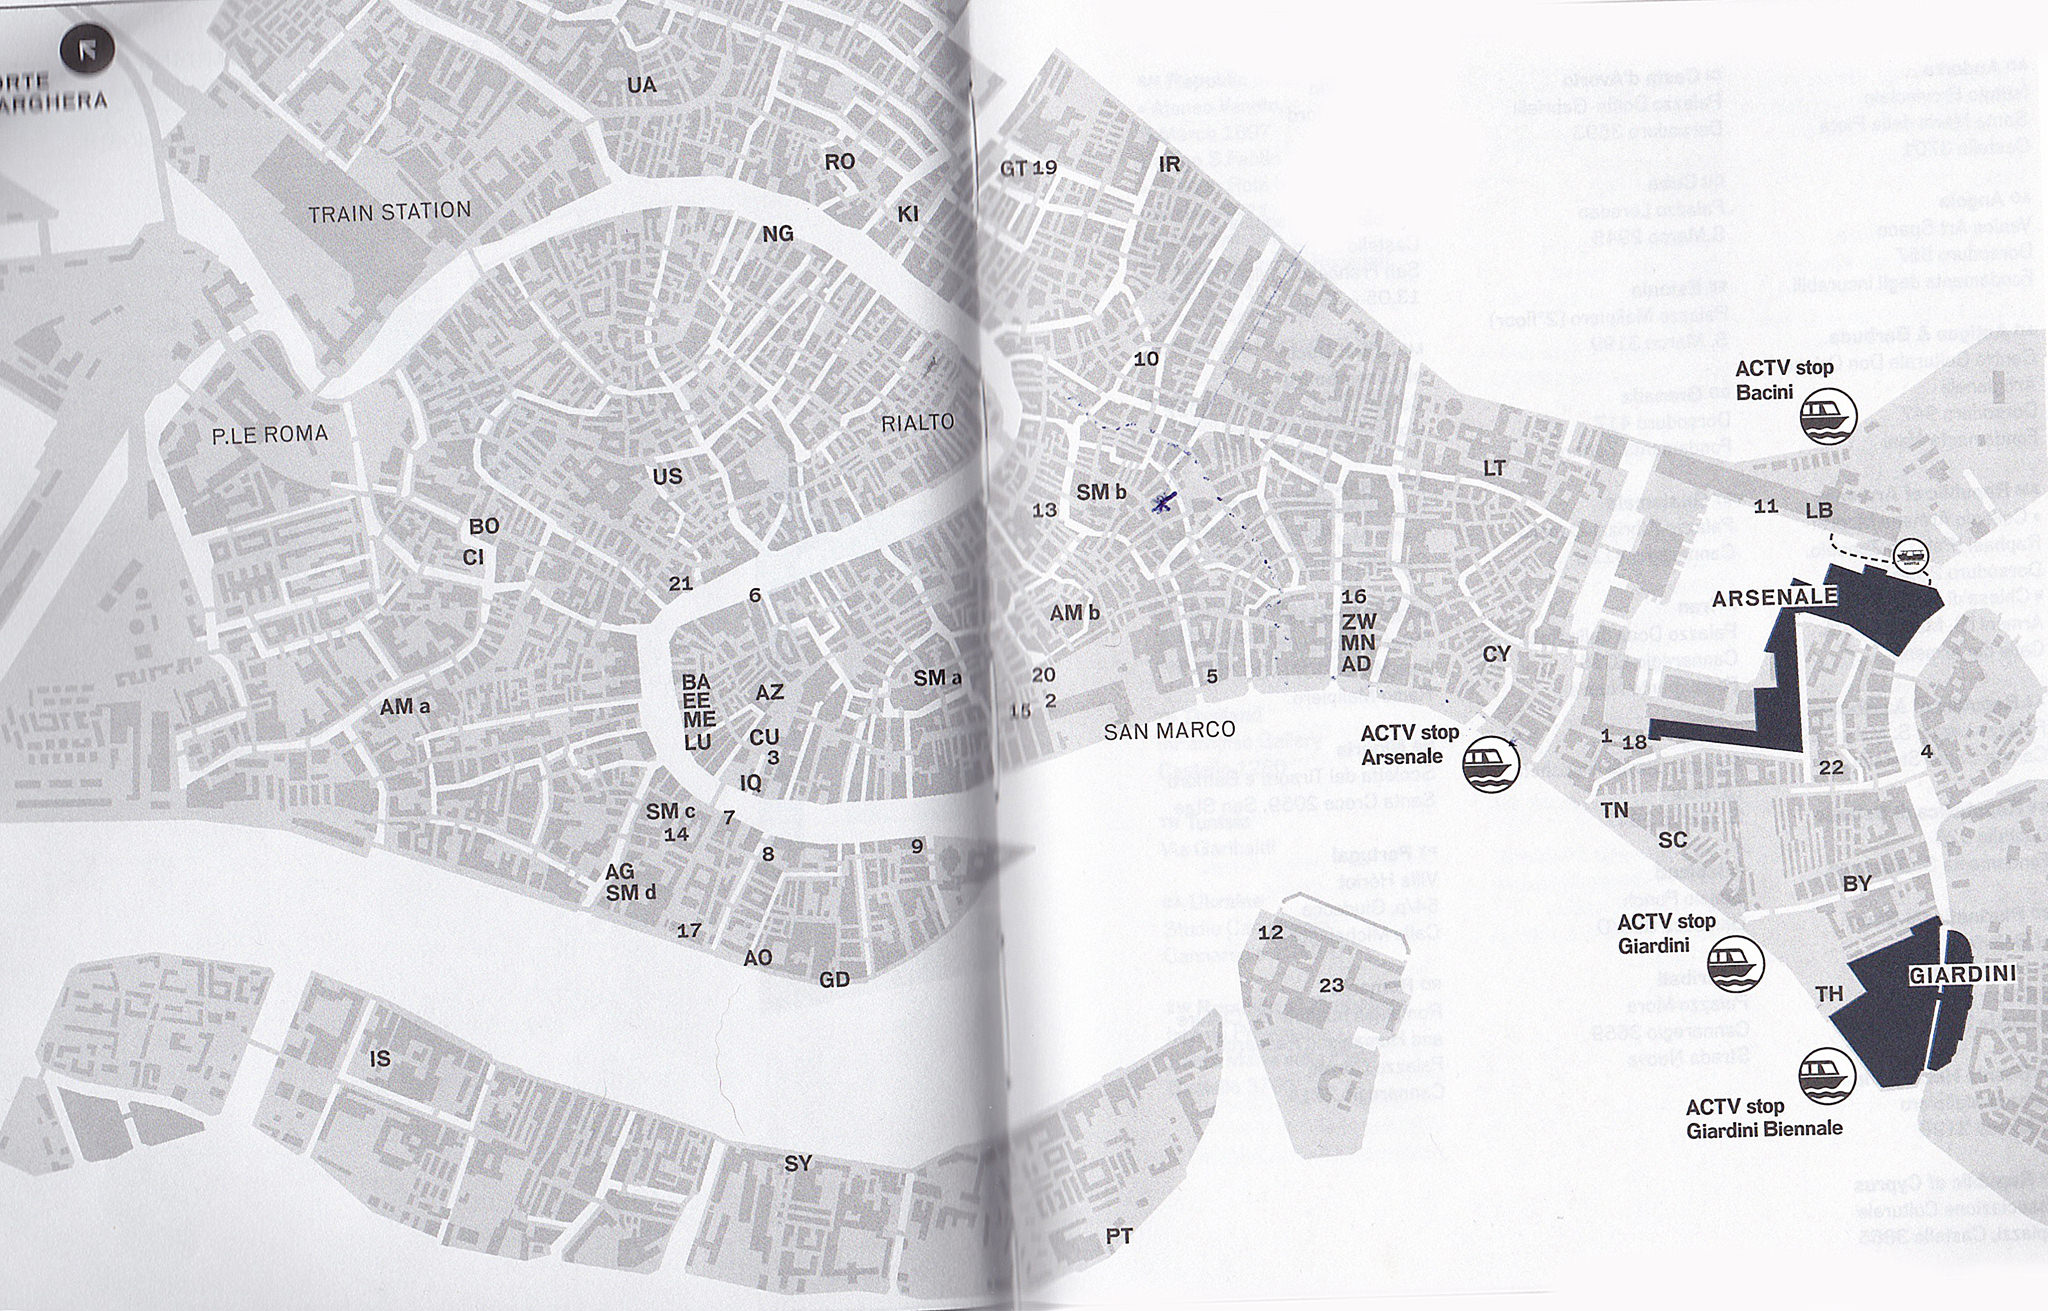 Map of collateral Venice Biennale exhibitions